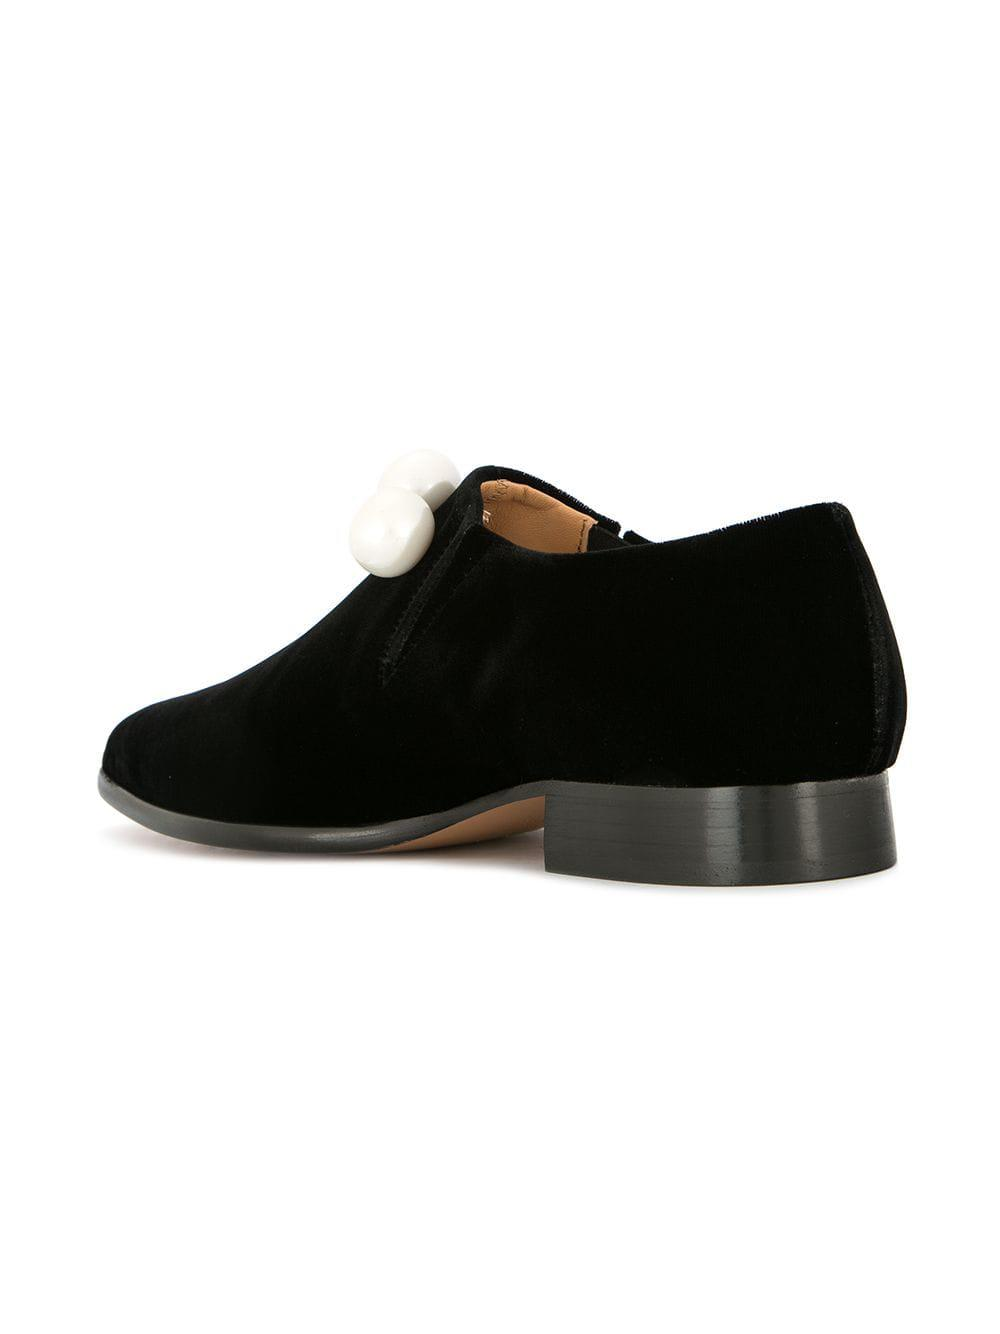 421d866bed8 ... Black Embellished Loafers - Lyst. View fullscreen